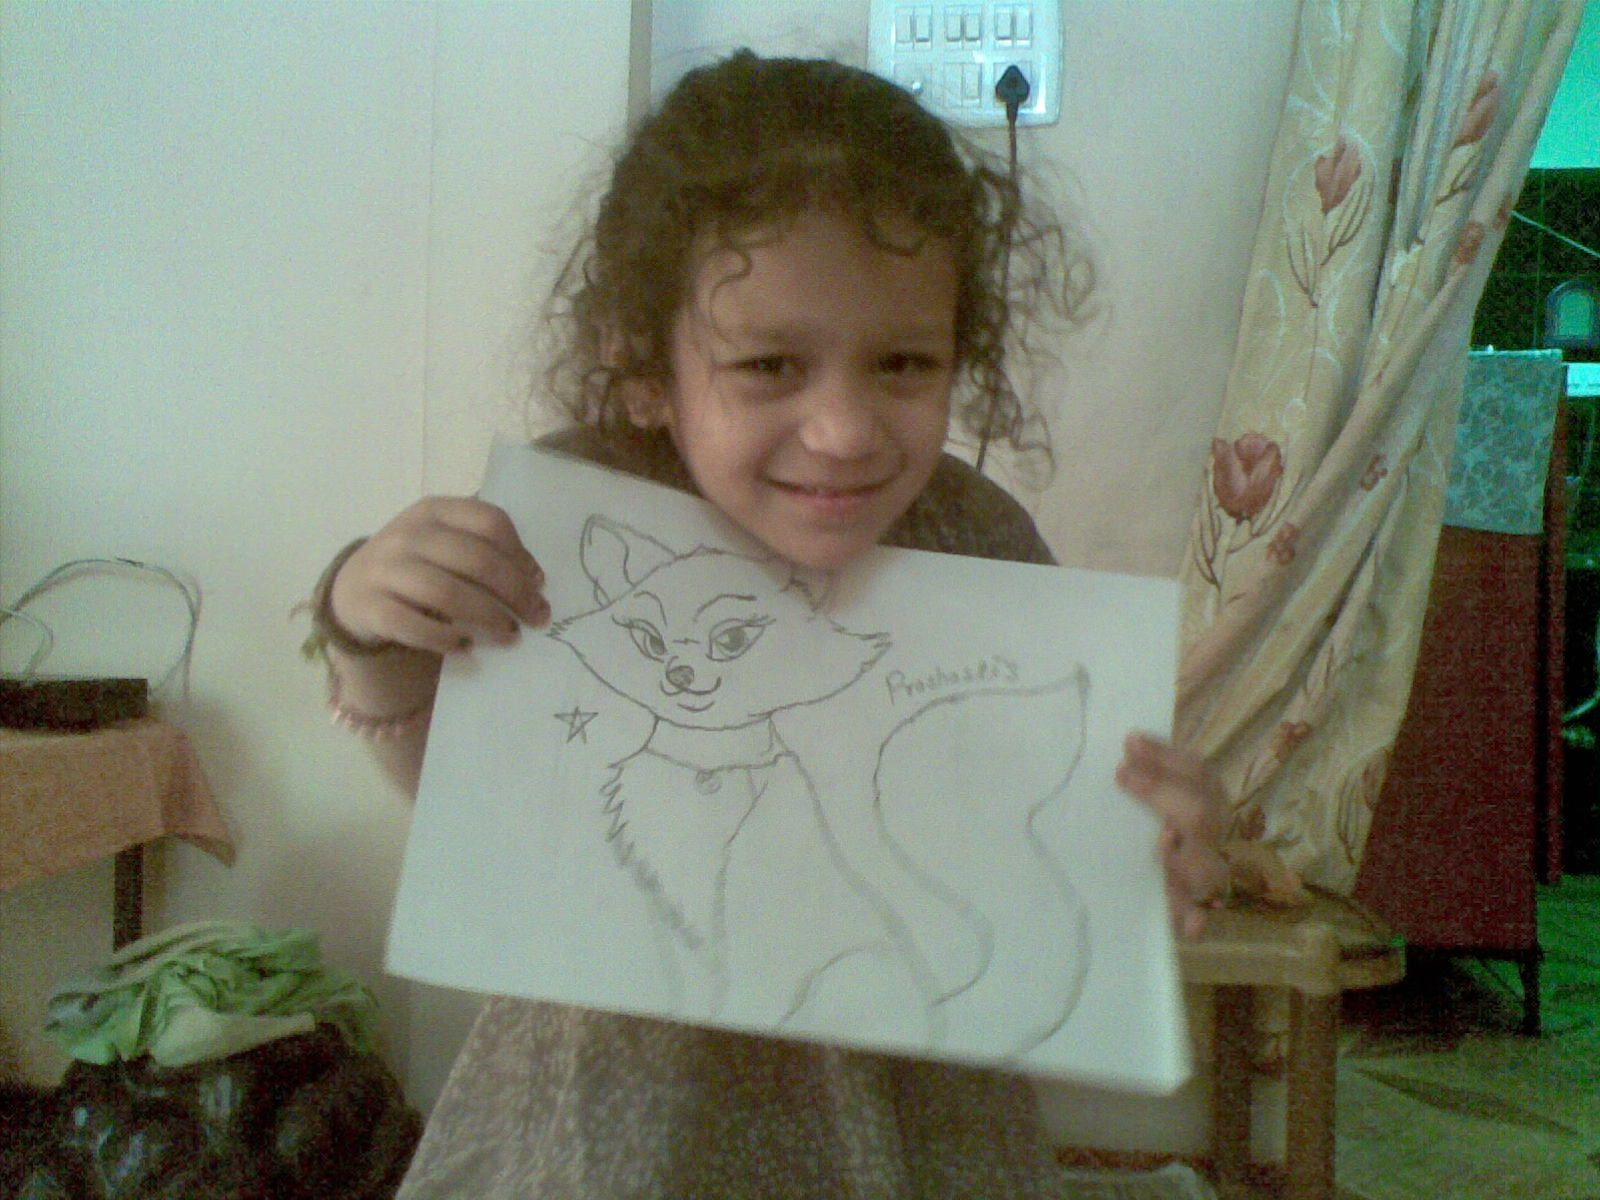 My daughter's draw miau's sketch :)